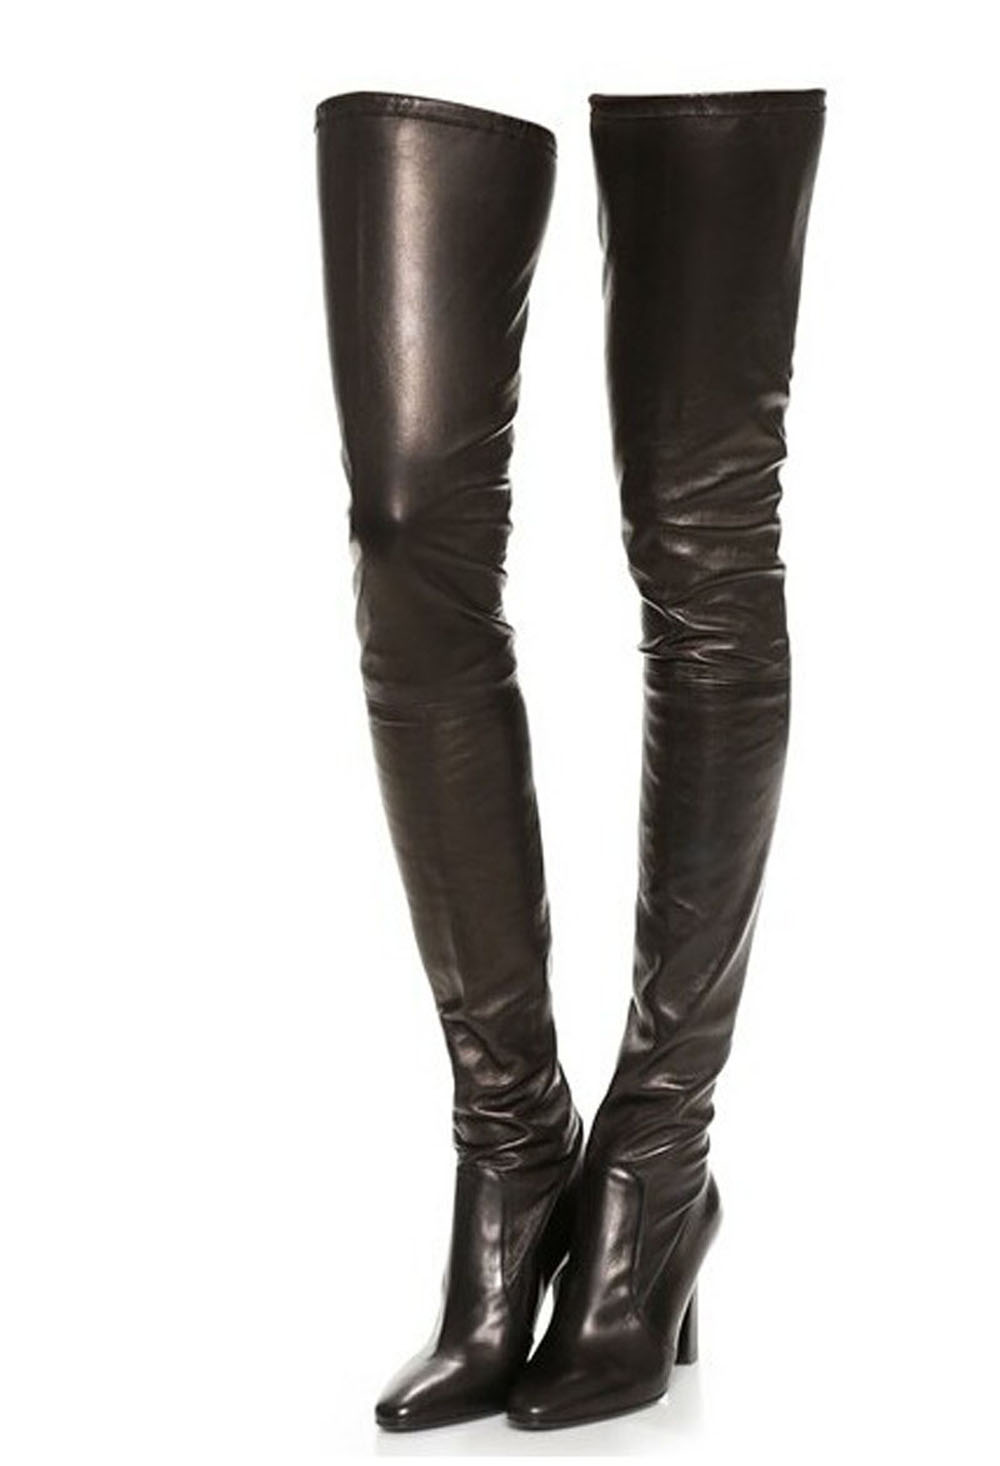 New Arrival High Quality Leather Pointed Toe Long Boots Sexy Over The Knee Thick Heel Boots Winter Thigh High Black Boots Women(China (Mainland))